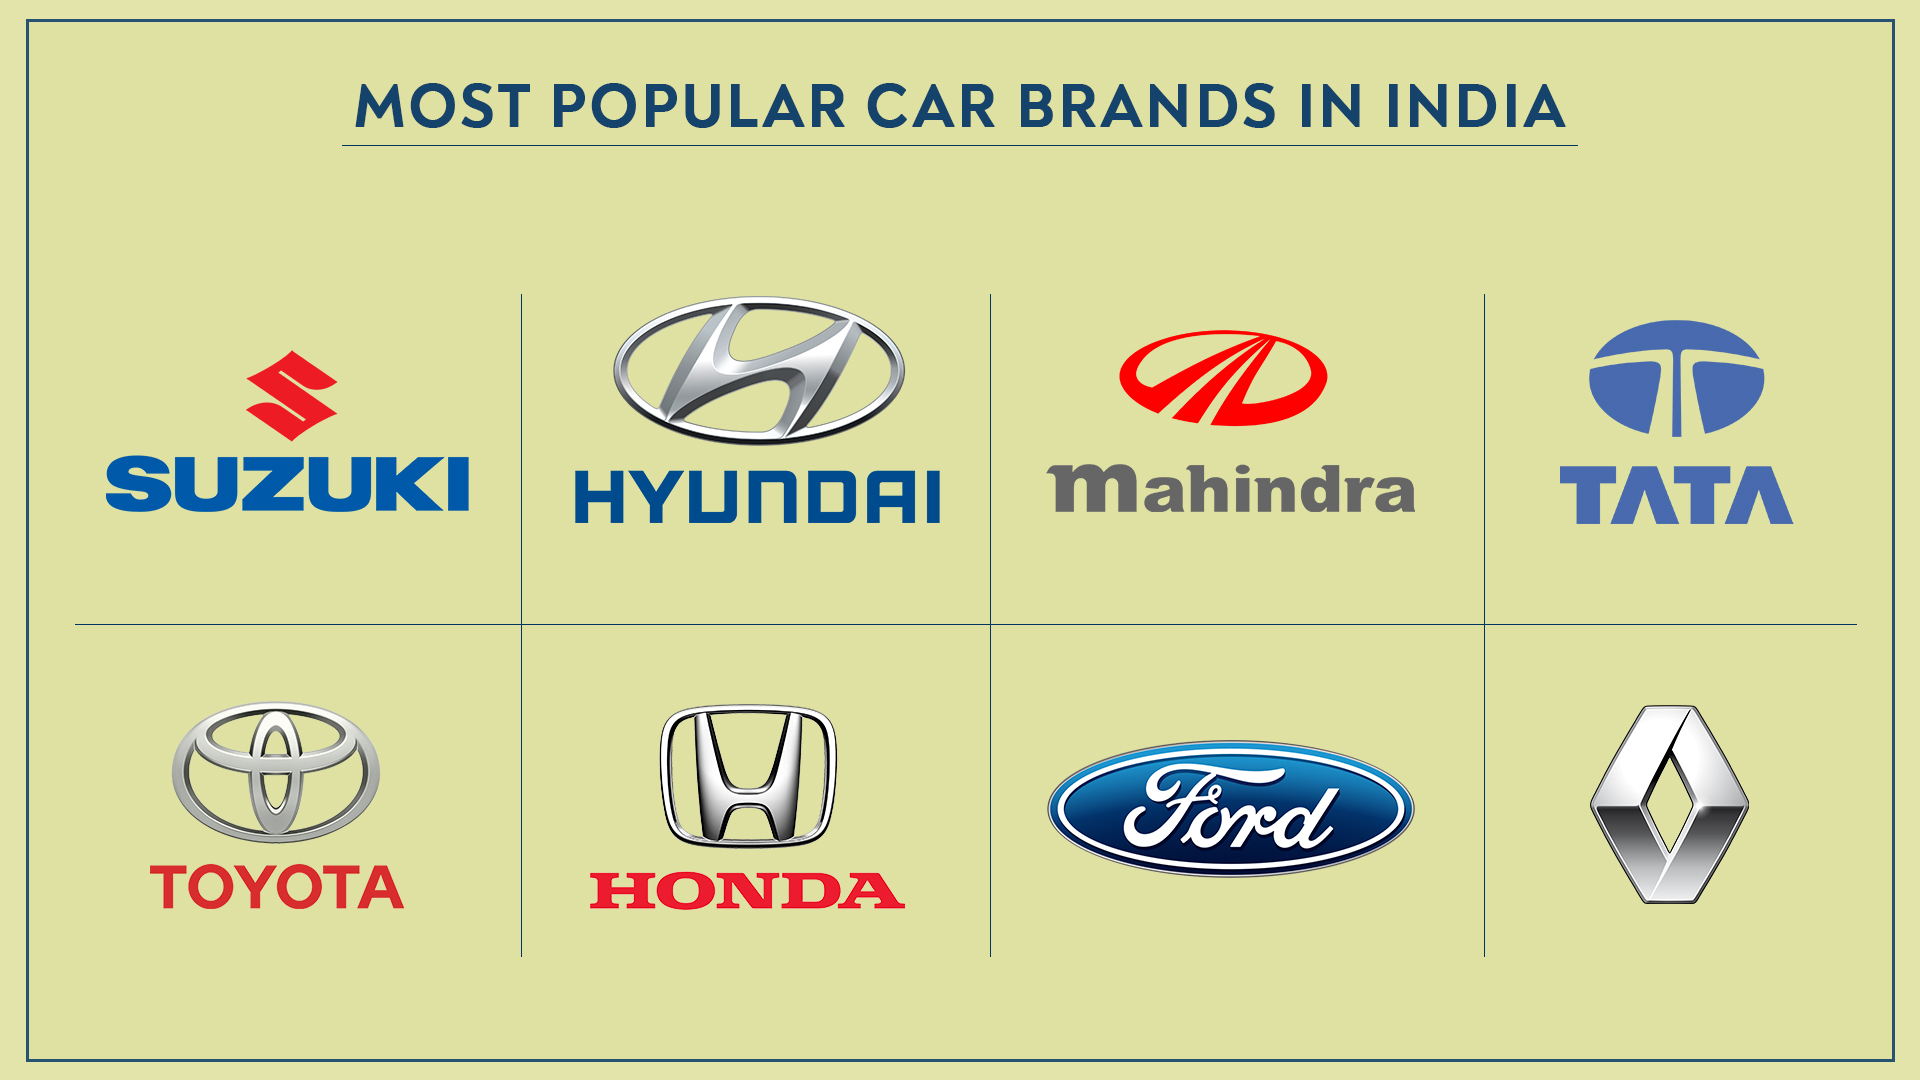 Why is Everyone Talking About These 8 Most Popular Car Brands in India?